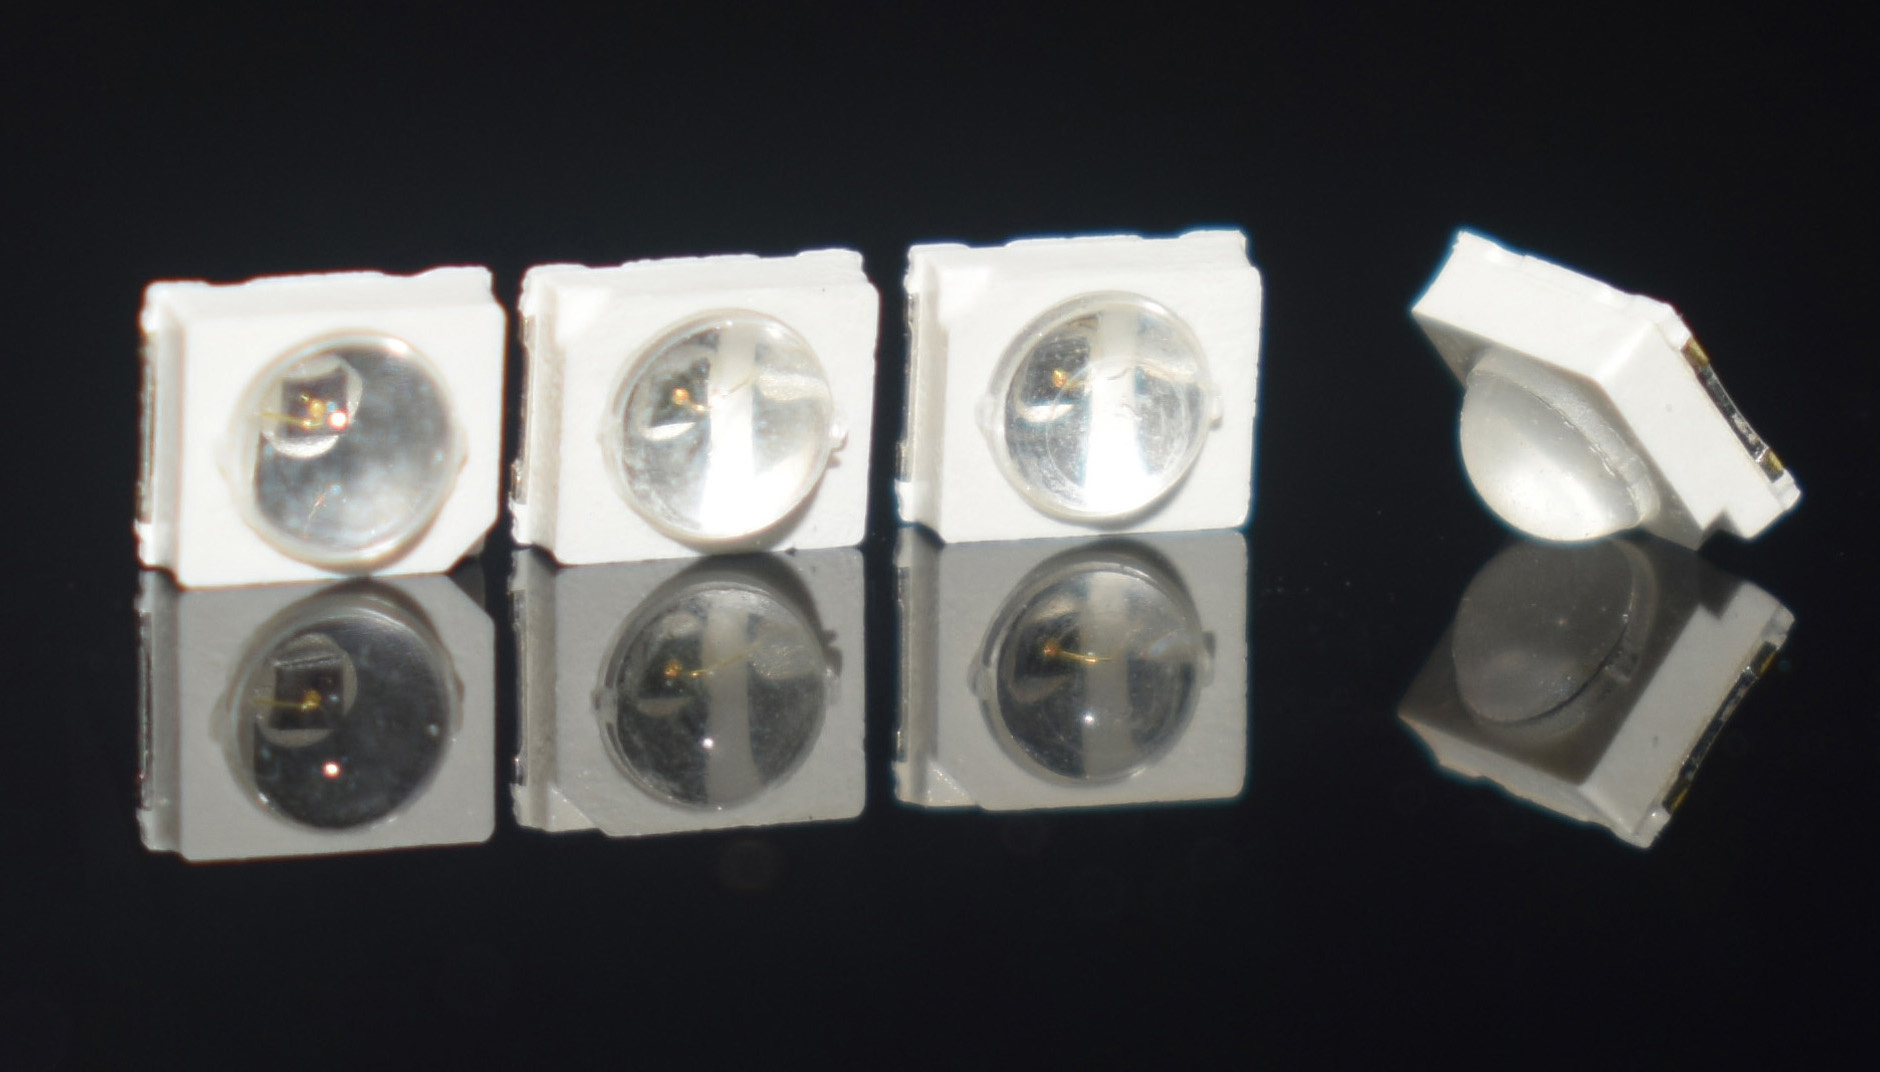 IR LED 940nm